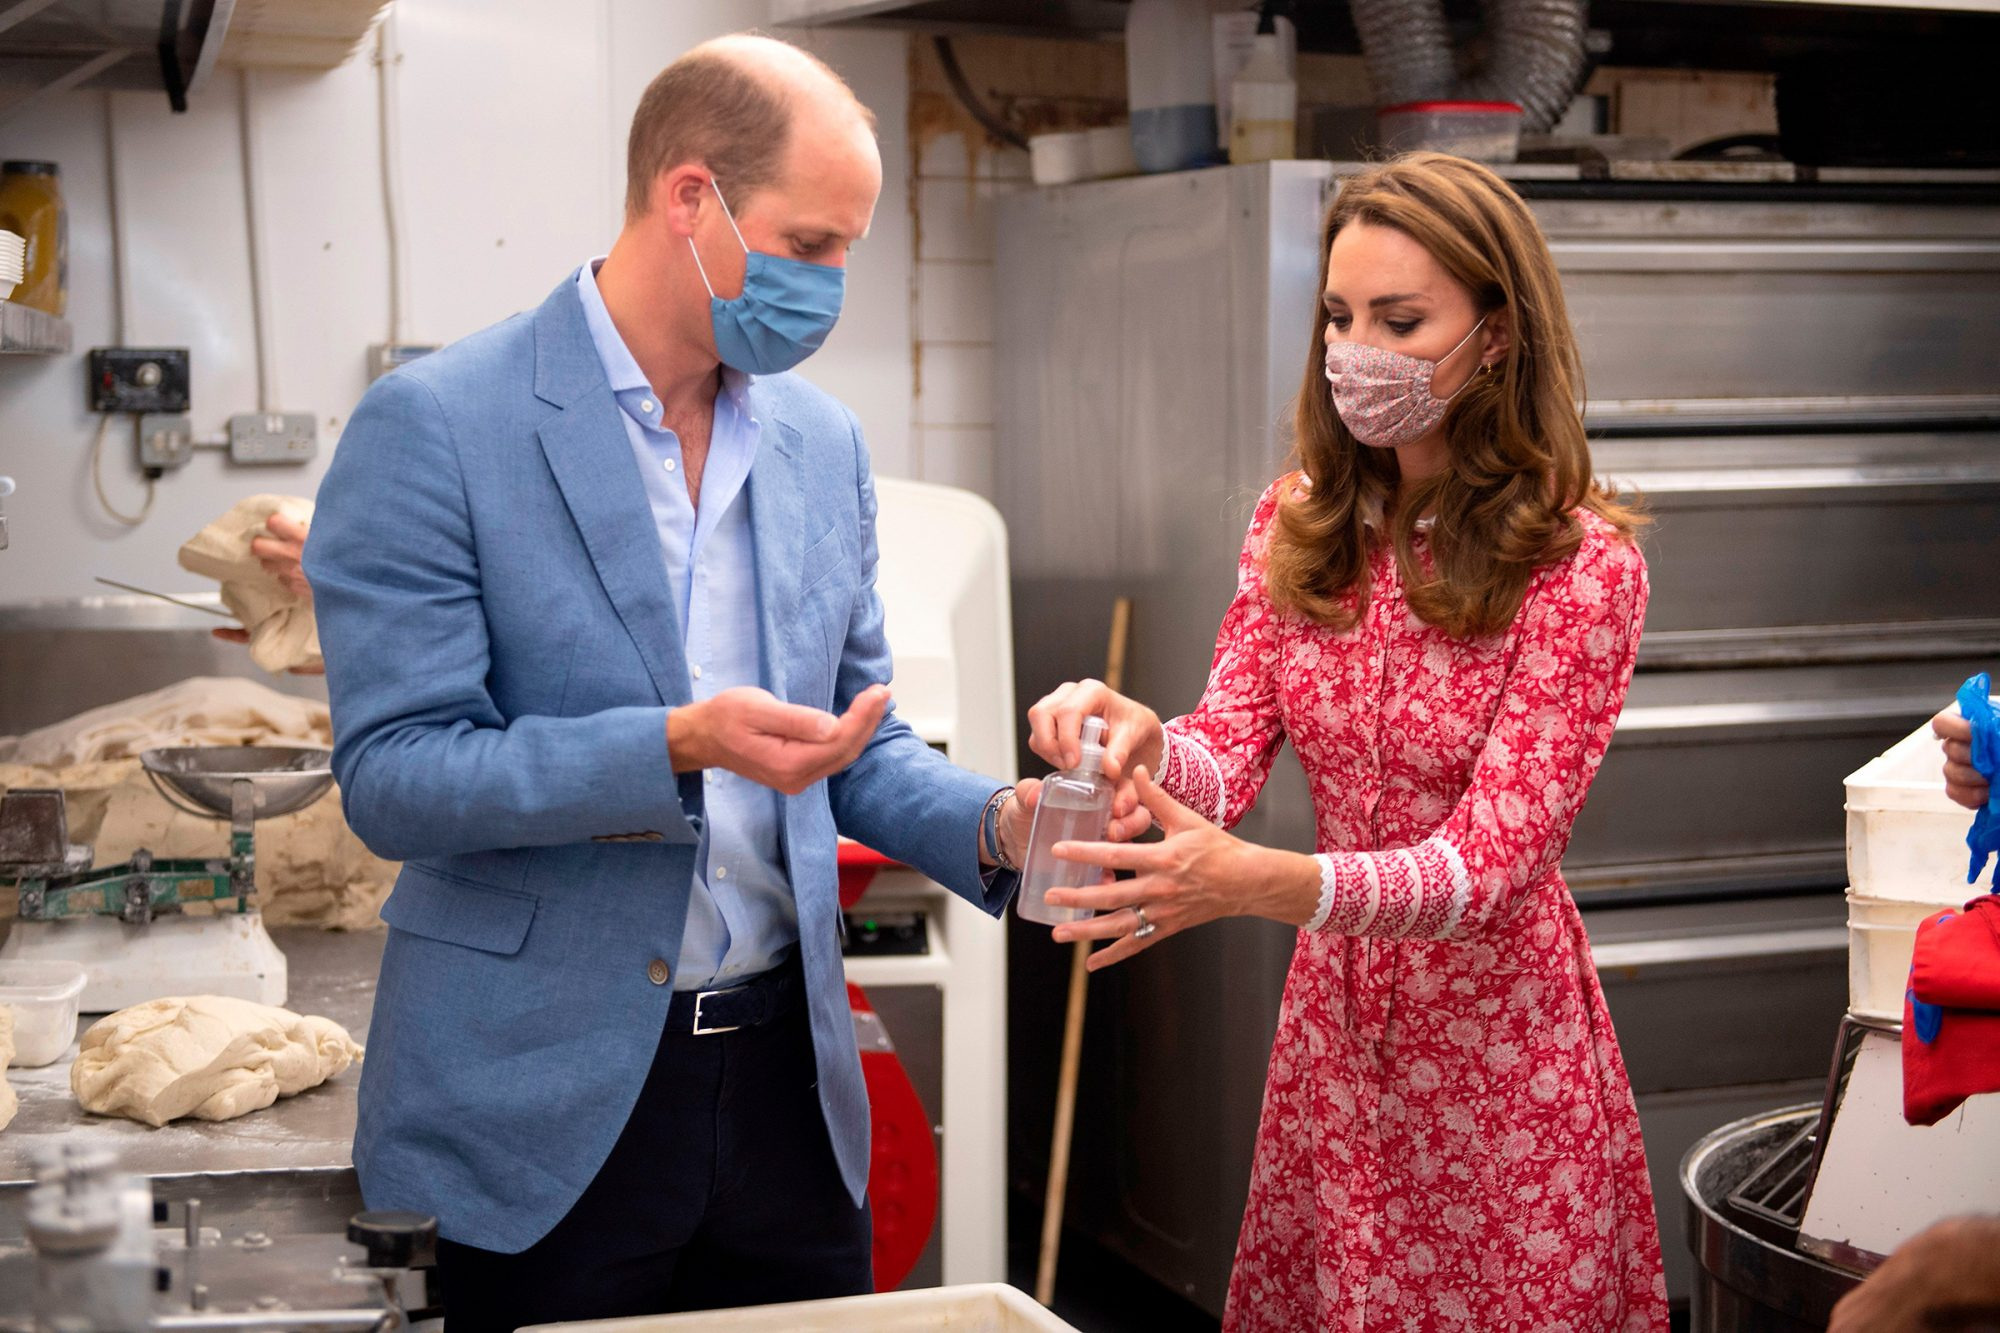 Prince William, Duke of Cambridge and his wife Britain's Catherine, Duchess of Cambridge visit to Beigel Bake Brick Lane Bakery in east London on September 15, 2020